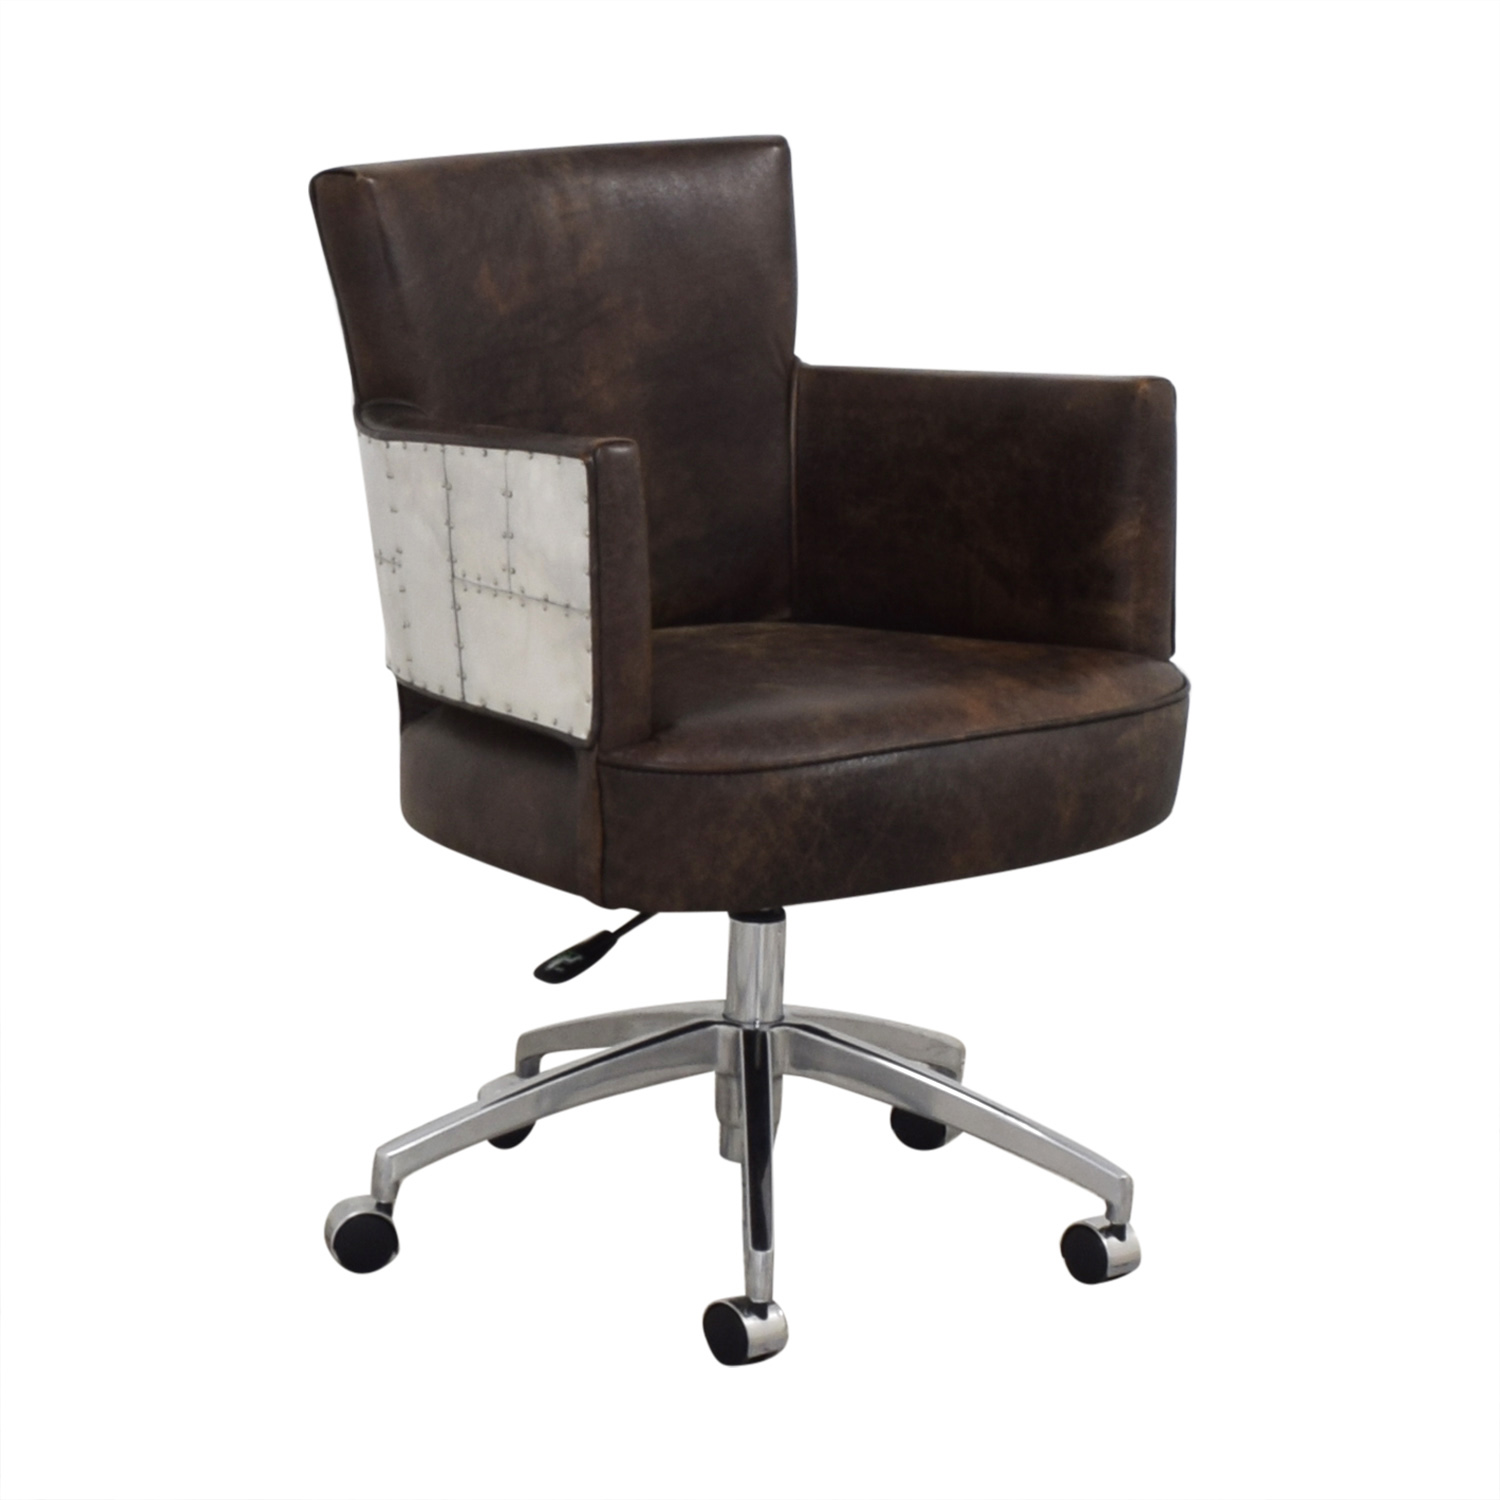 Timothy Oulton Timothy Oulton Swinderby Chair used